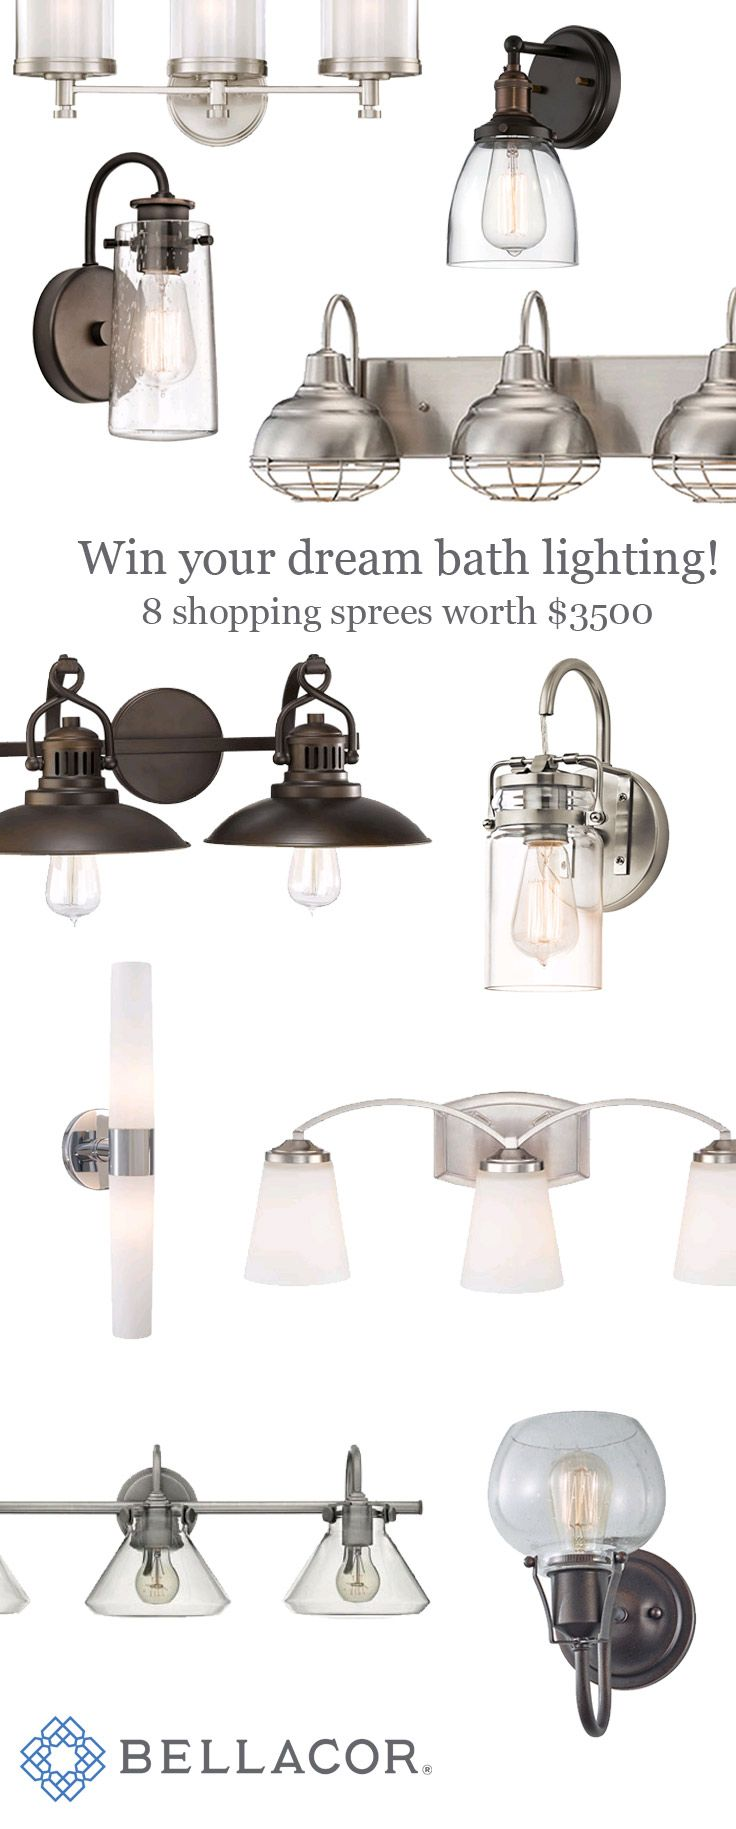 Farmhouse Bathroom Light Fixtures Amusing $500 Bath Lighting Shopping Sprees Pick Out Your Dream Bathroom